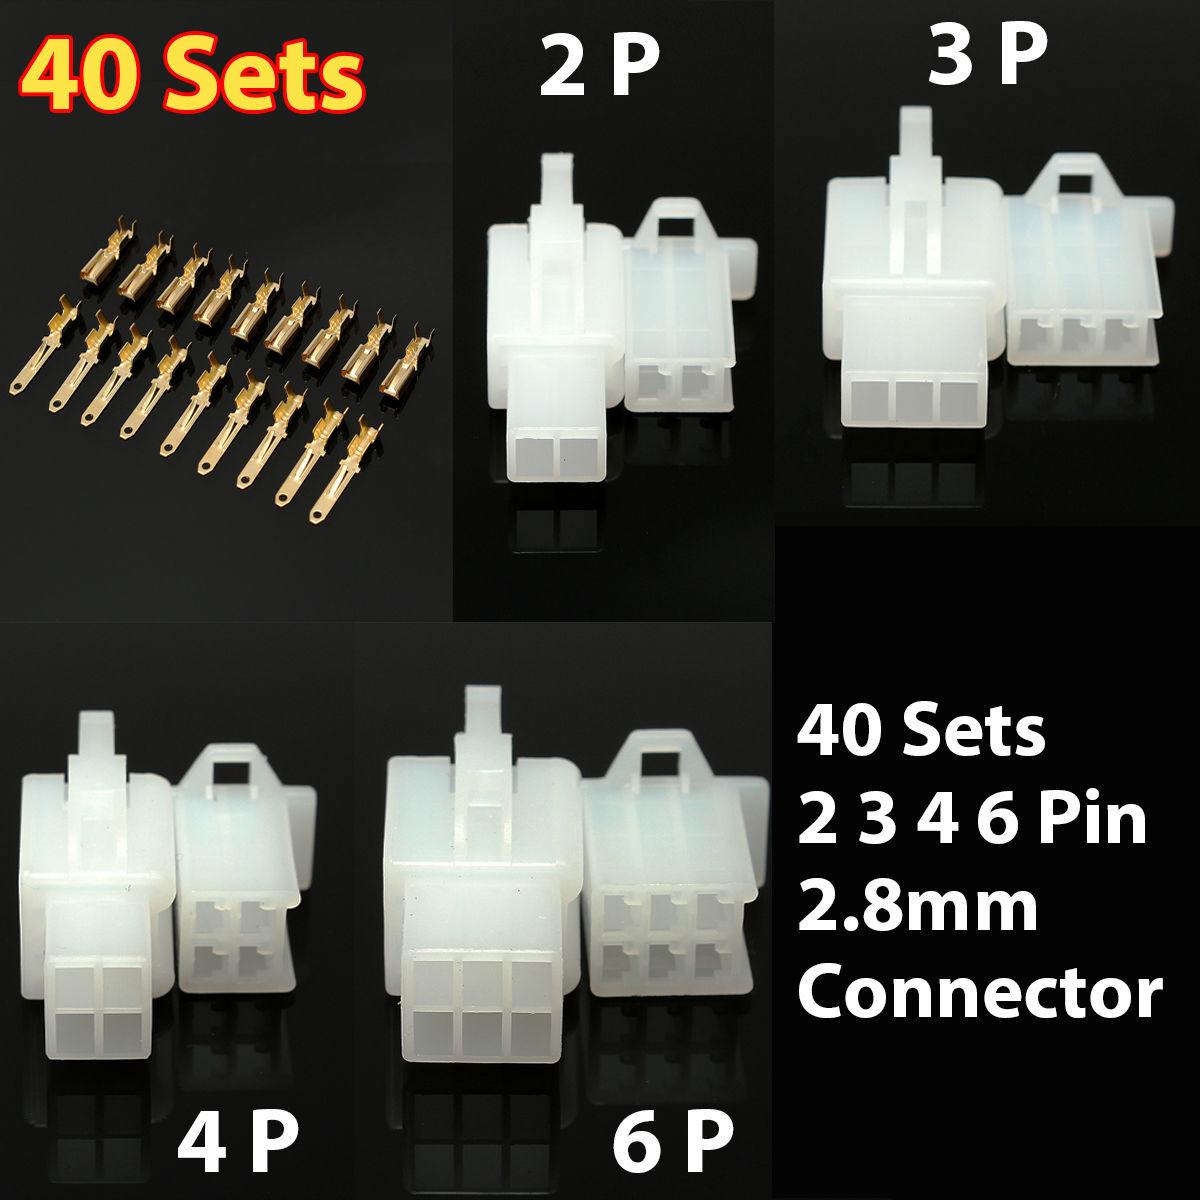 40 Set/380pcs Auto Electrical 2.8-2/3/4/6 Way Pin Wire Connector Terminal Kit Mayitr Male Female Cable Wiring Terminals for Cars 50 set kit vh3 96 3 96mm 4 pin female 22awg wire with male connector a set include socket plug terminals